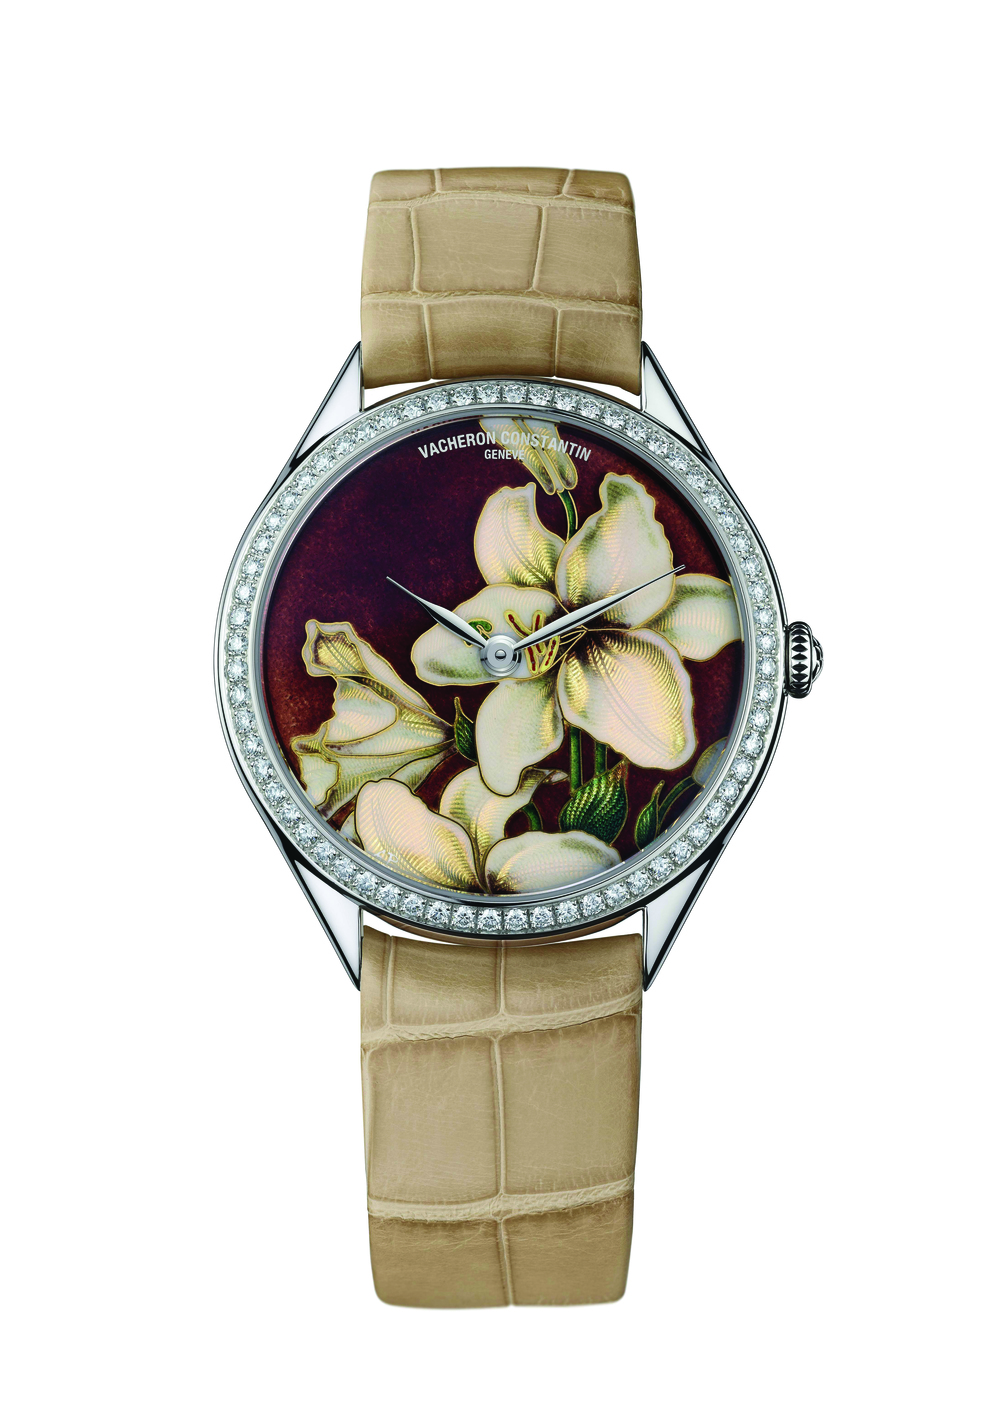 Vacheron Constantin Métiers d'Art Florilège White Lily Watch. $134,400 A distinctive white lily makes this watch a showstopper. A crocodile band and baguette cut diamonds add to the overall allure. At Palladio Boutiques